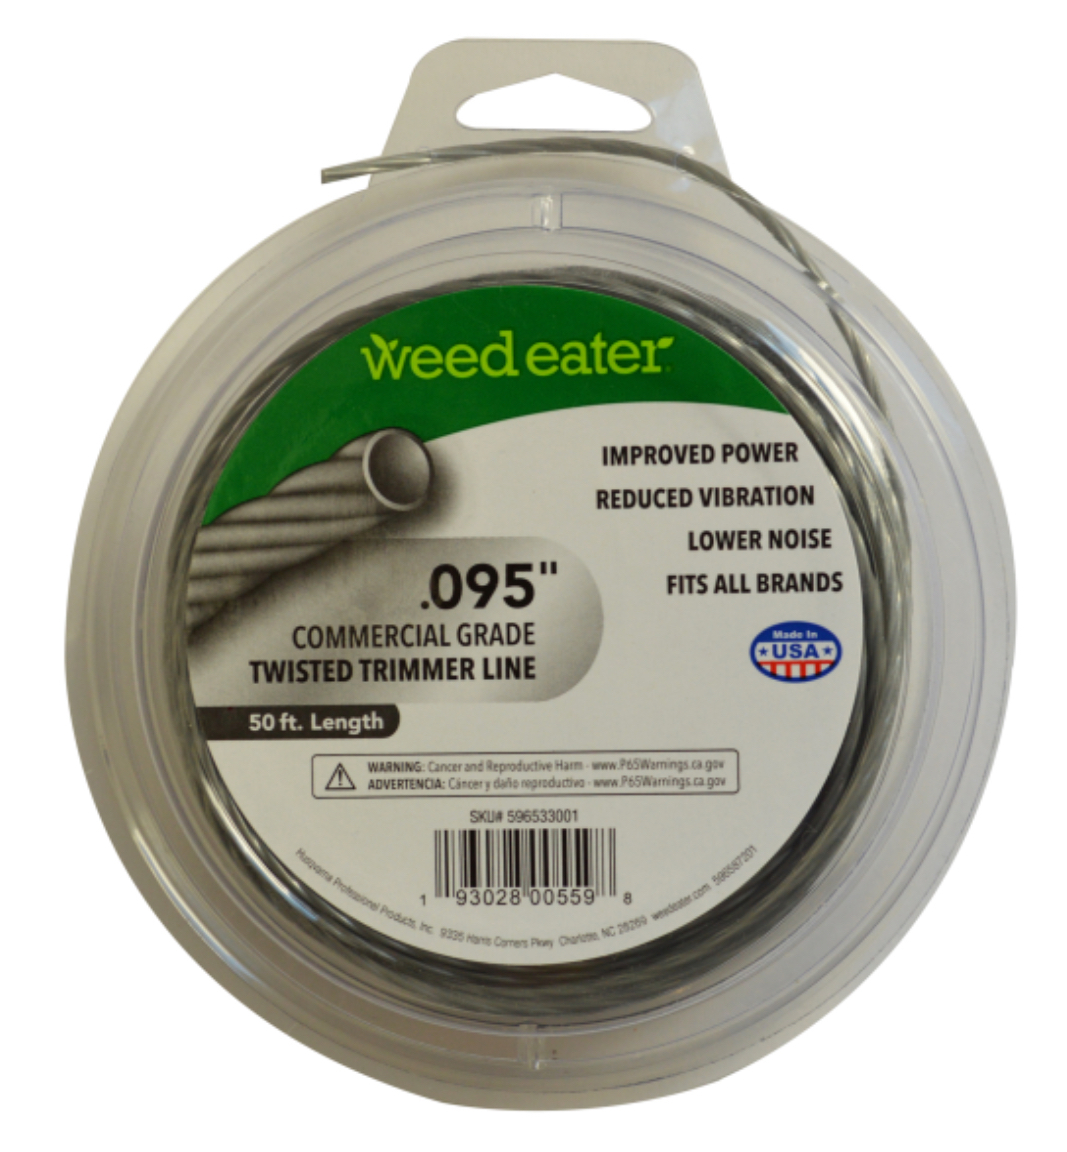 Weed Eater .095 Inch Commercial Grade Twisted Trimmer Line, 50 Feet - $8.95